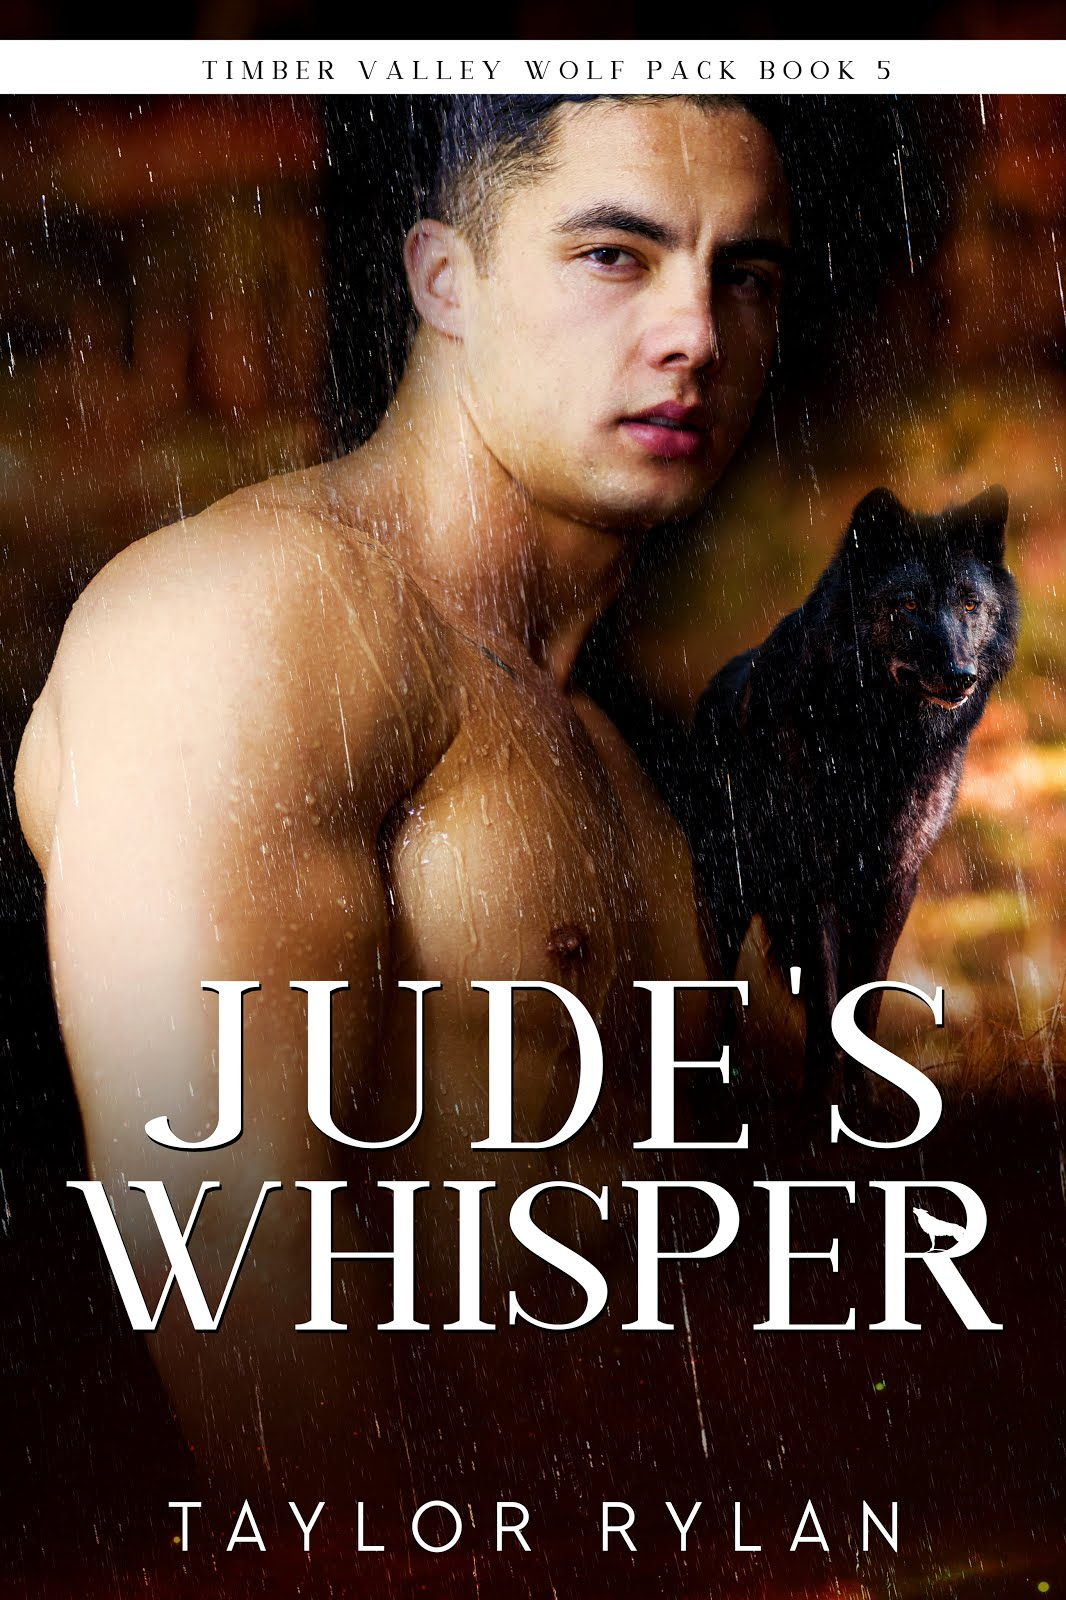 Jude's Whisper by Taylor Rylan